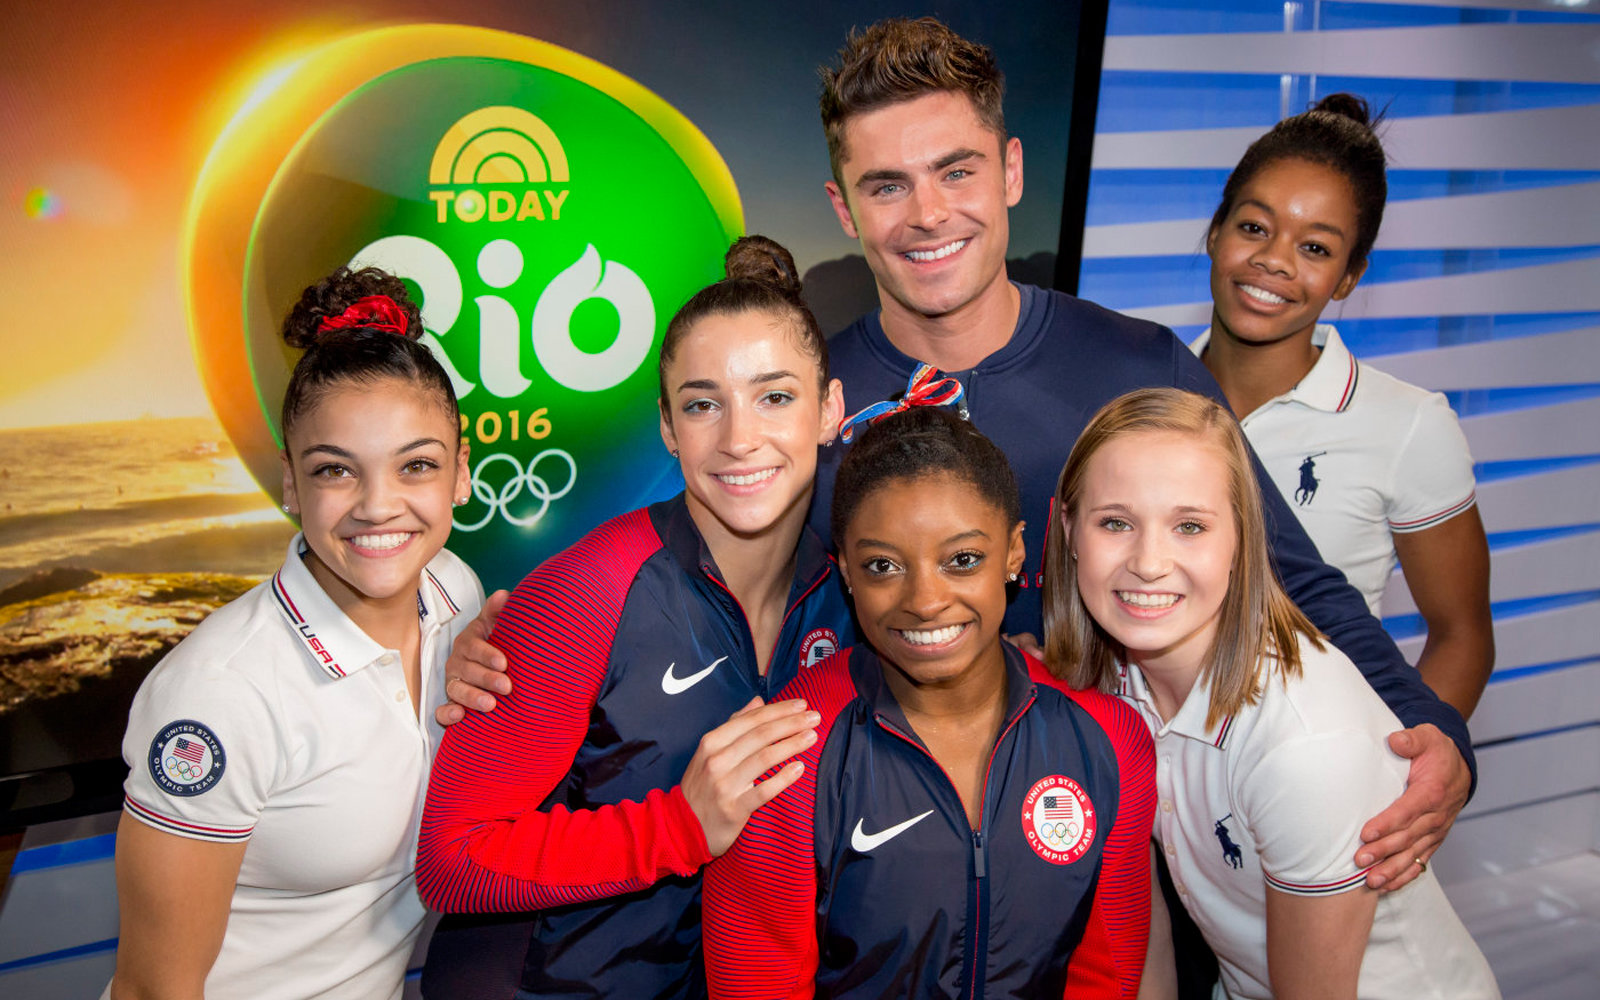 Zac Efron Explains Why He Flew to Rio to Surprise Simone Biles and the Final Five